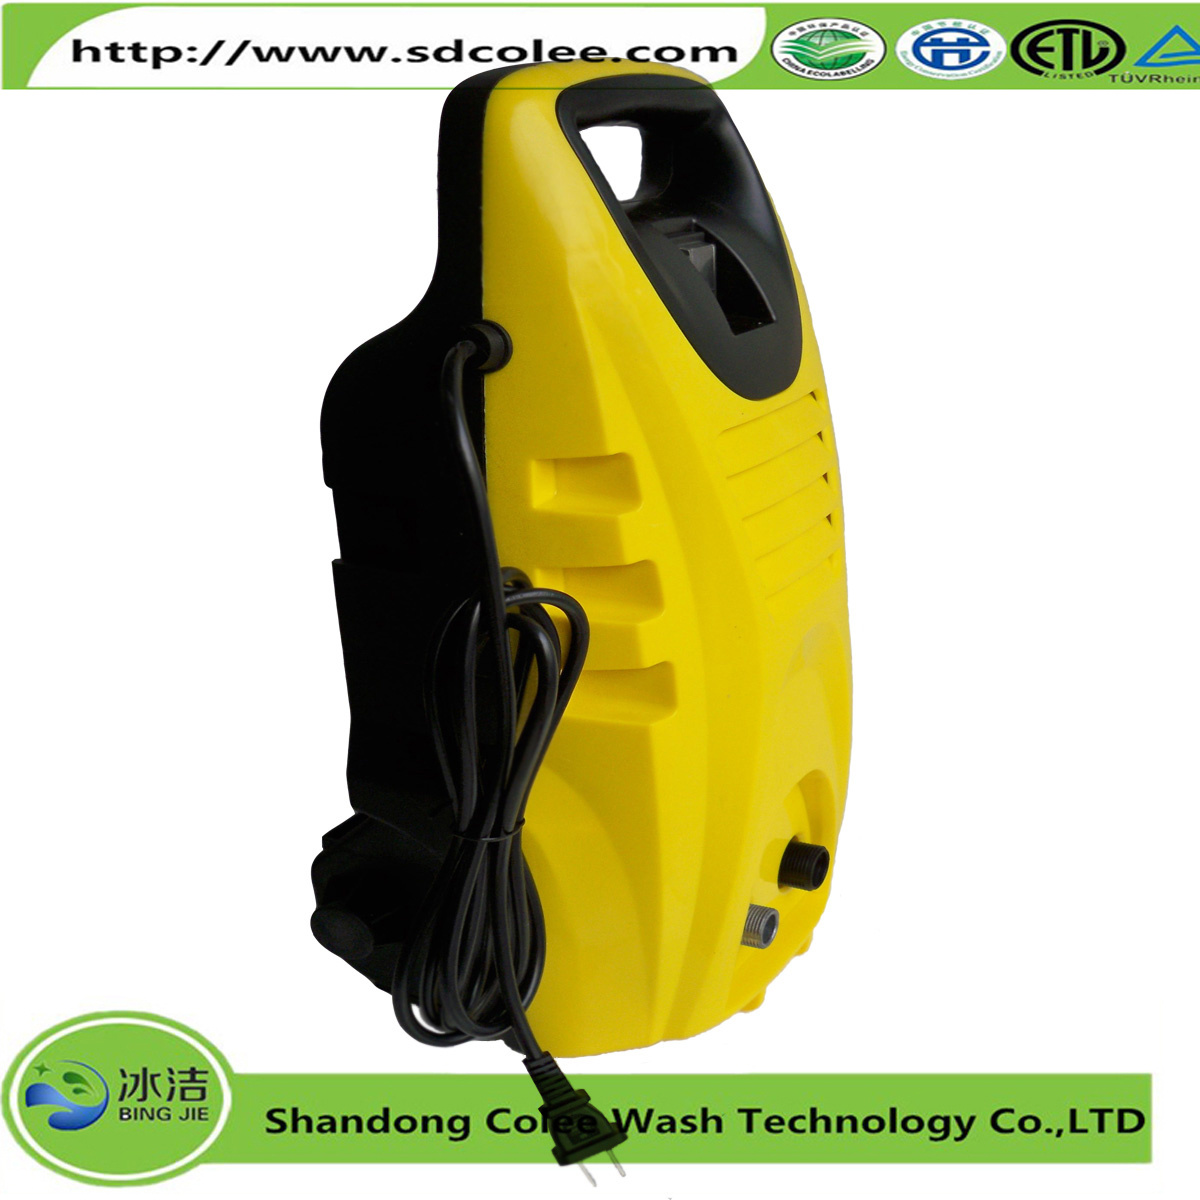 Electric High Pressure Car Washing Machine for Family Use